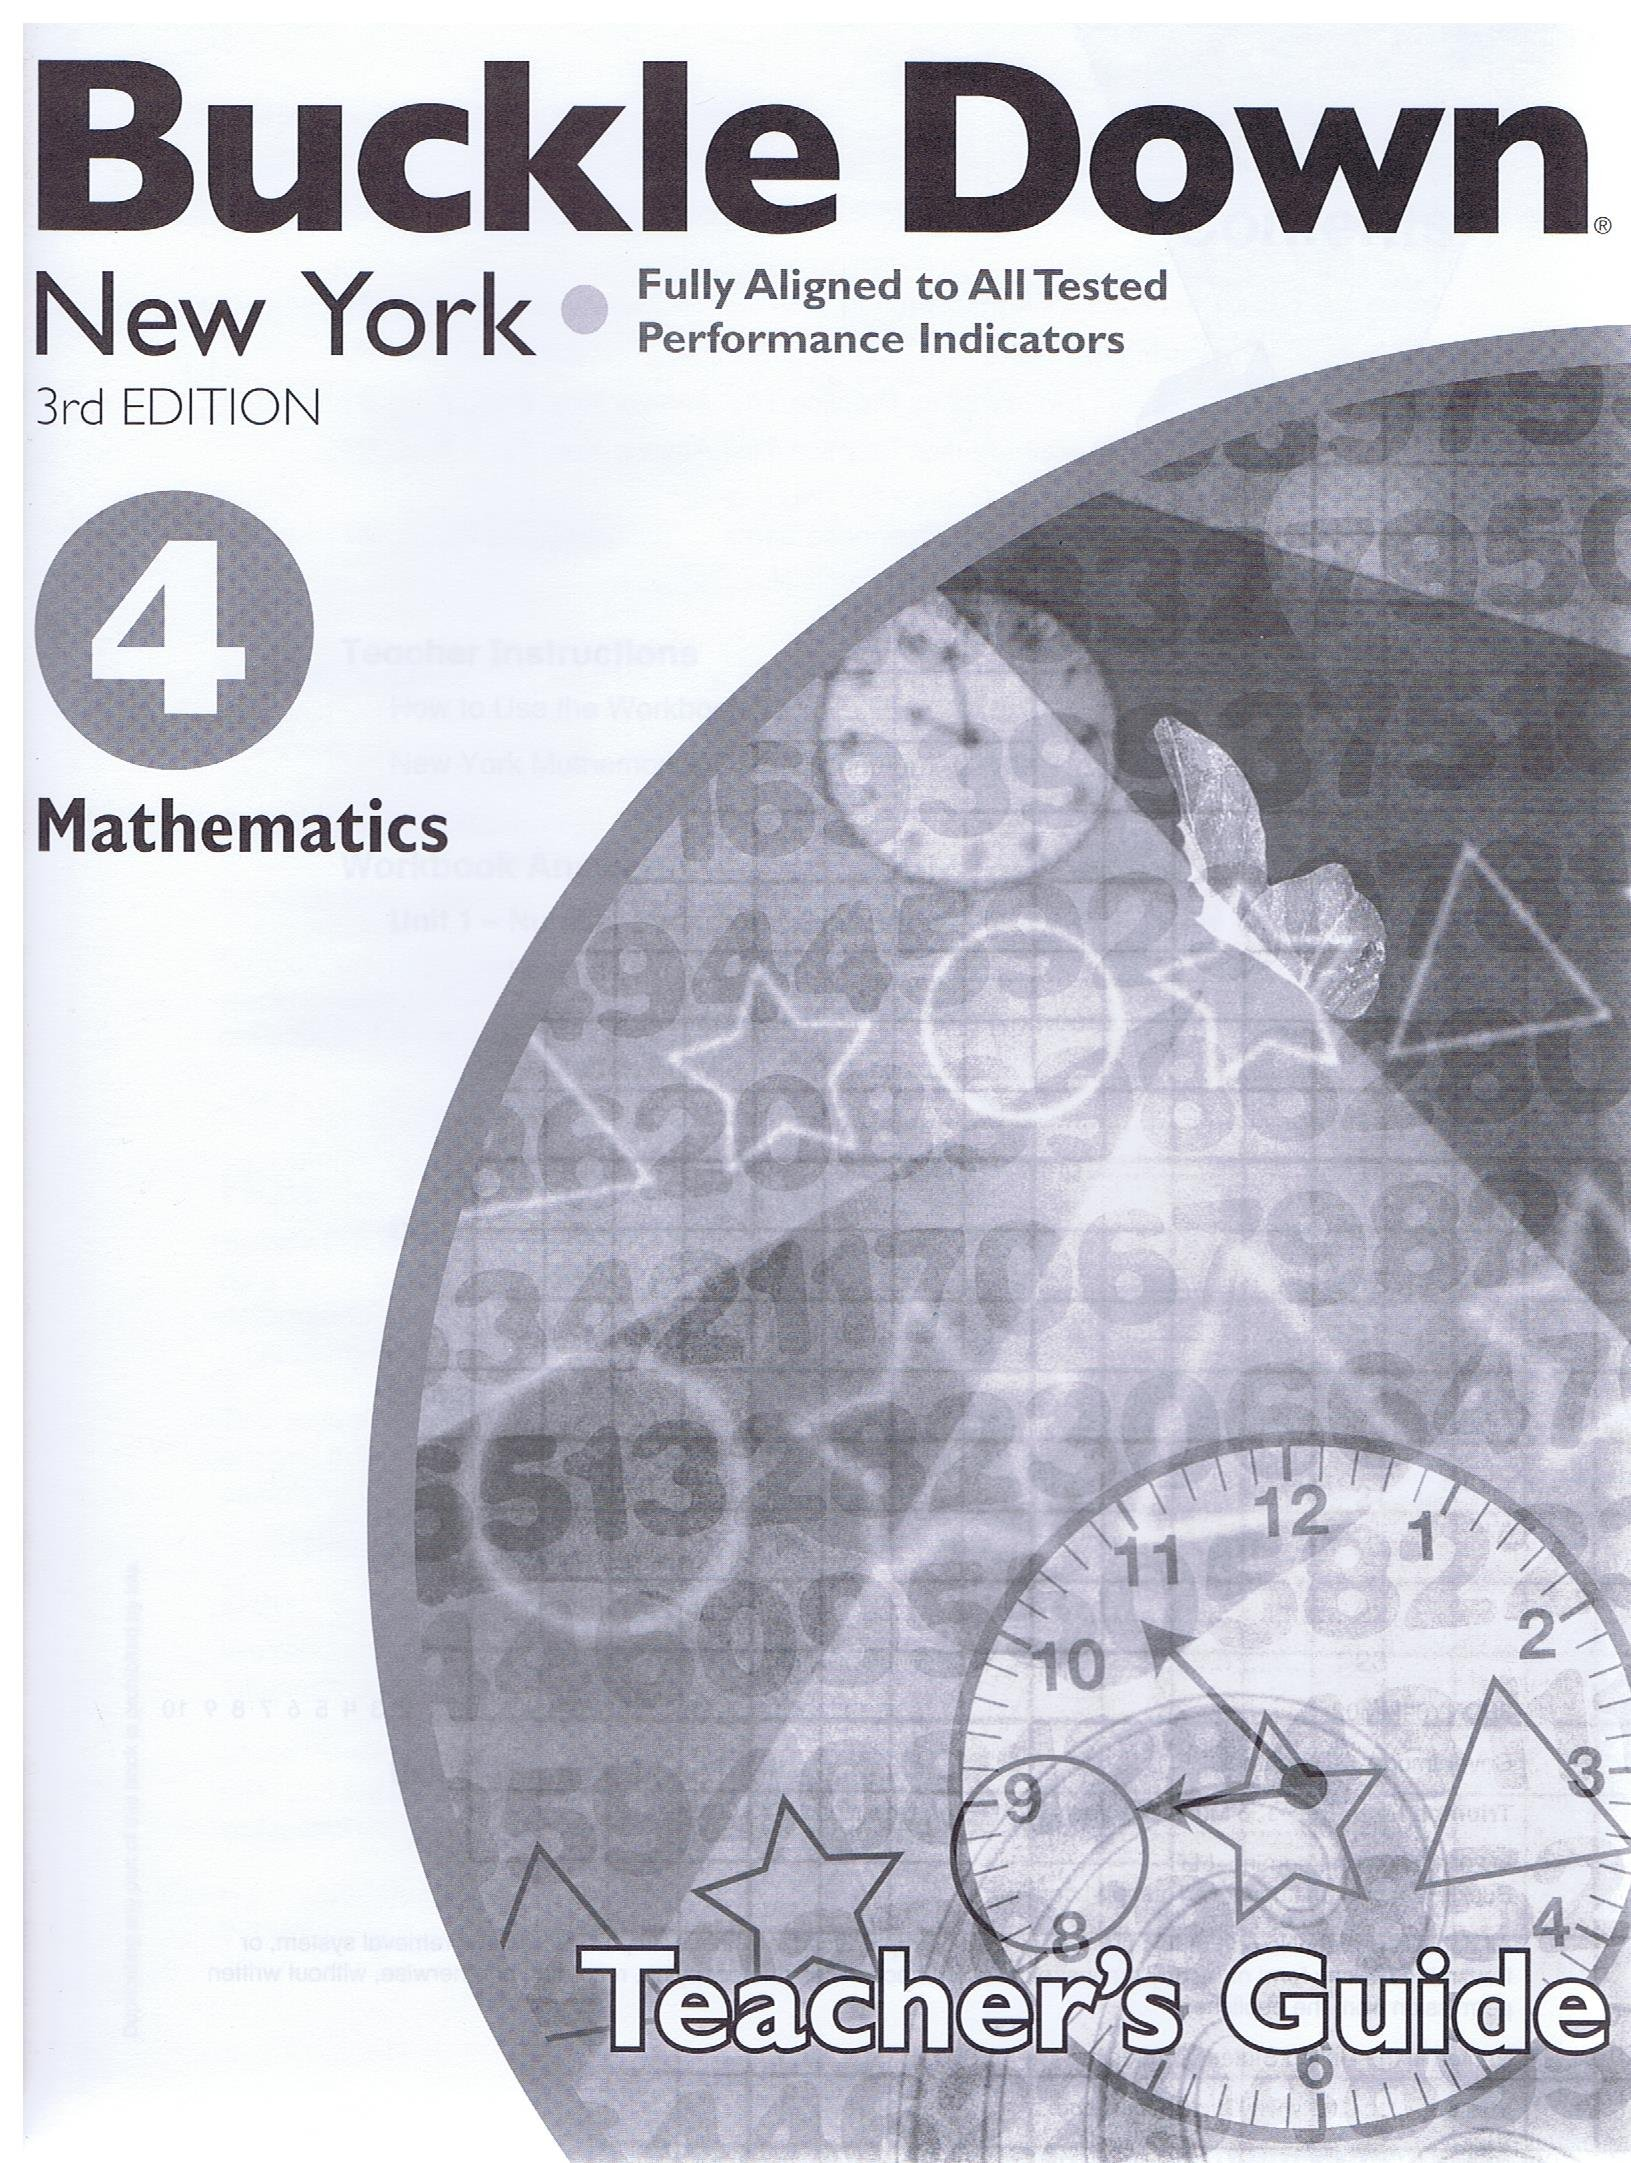 Download Buckle Down 3rd Edition New York G4 Math Teacher's Guide (Buckle Down) PDF